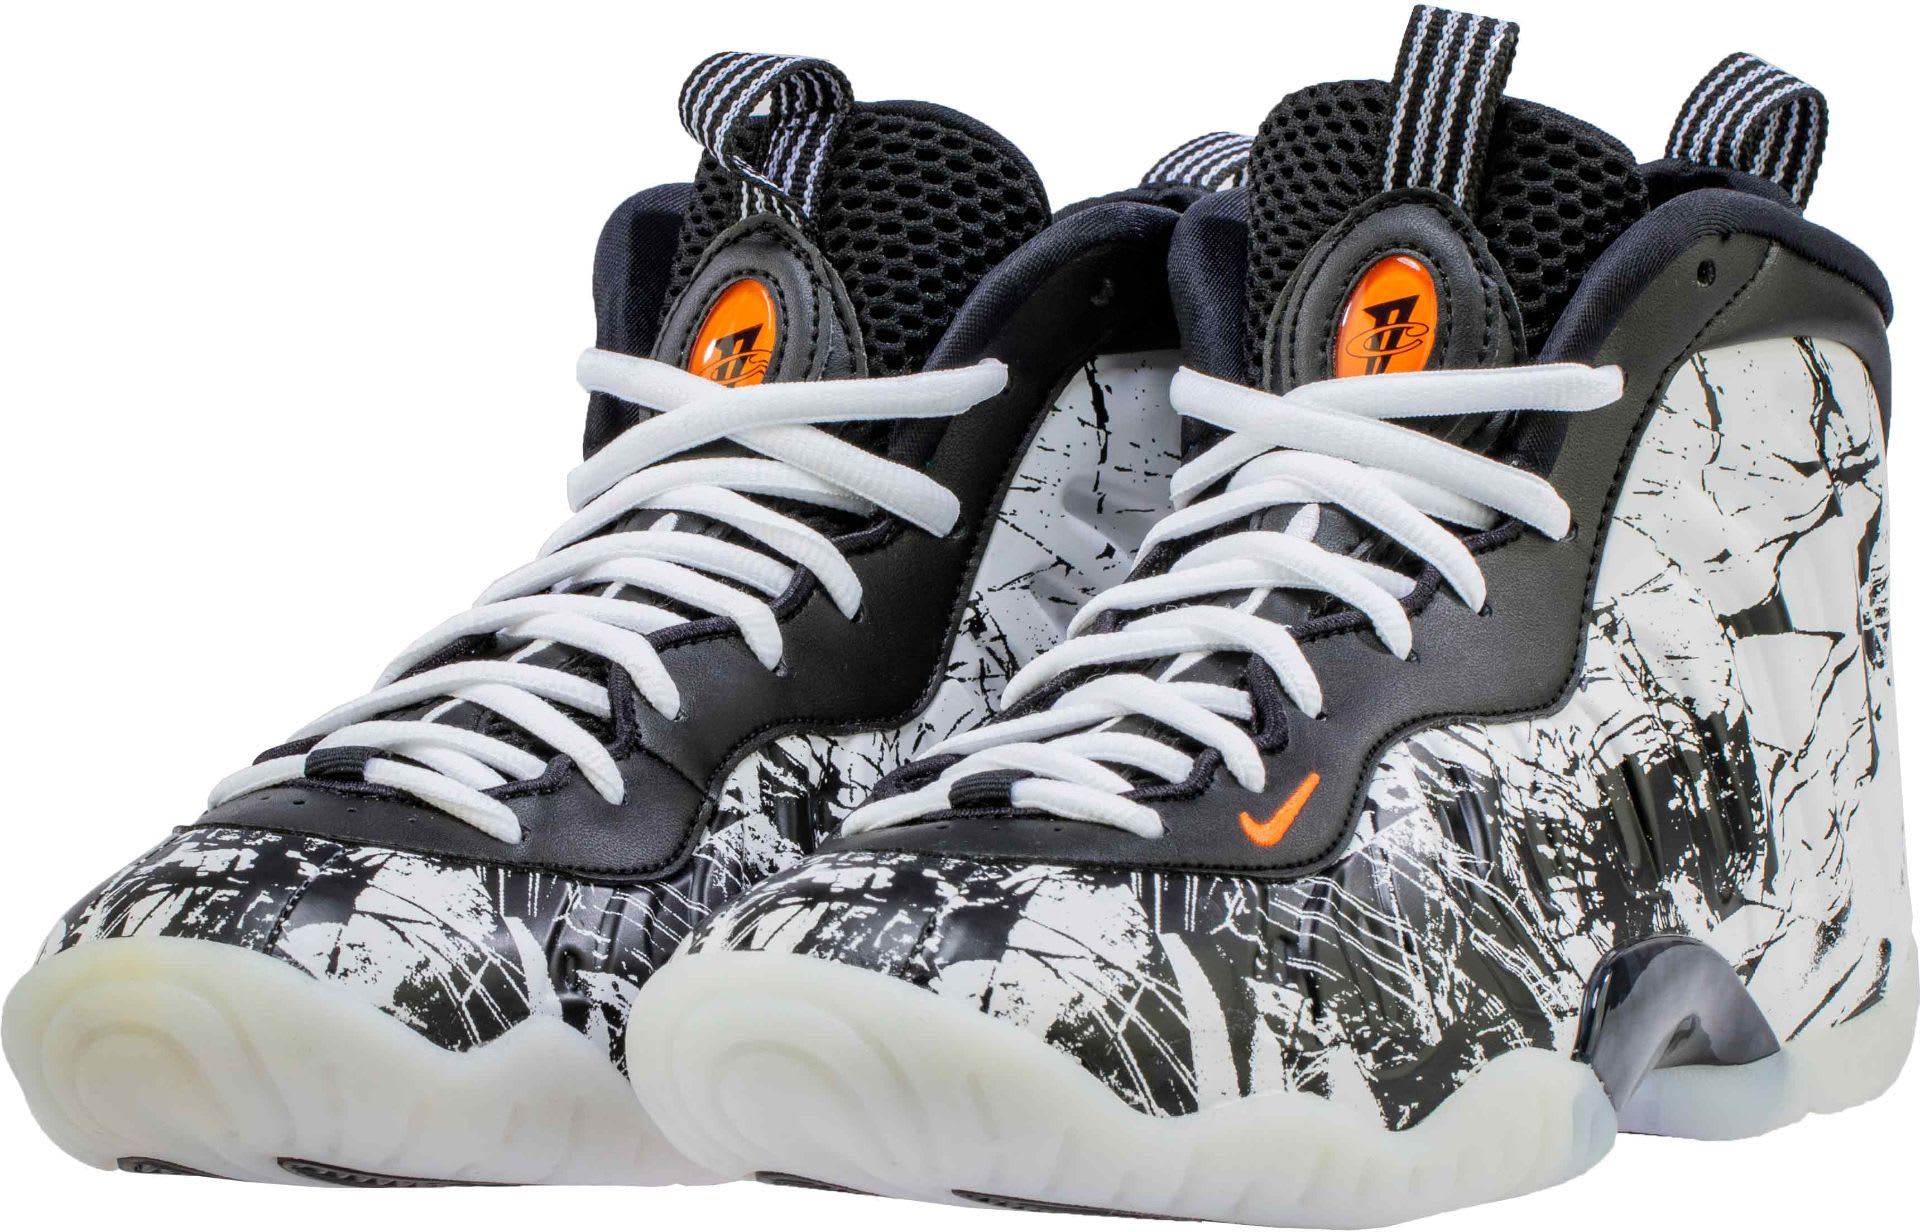 "Nike Air Foamposite One ""Shattered Backboard"" Release Date Revealed: Photos"